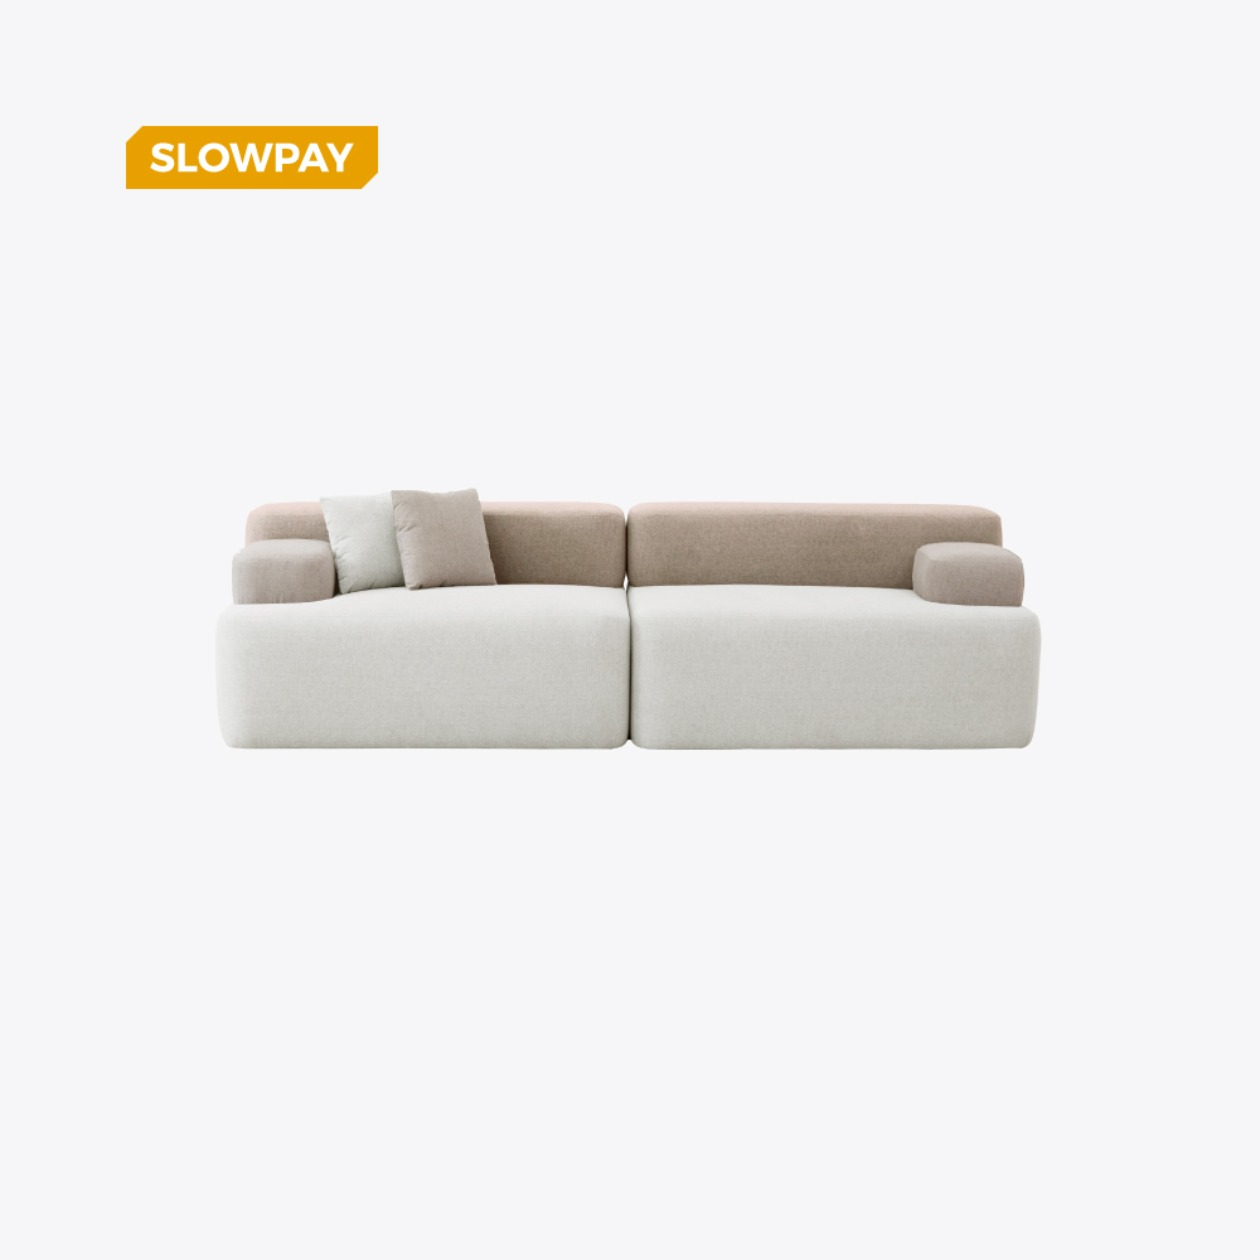 [SLOW PAY] ABLE SOFA A+A